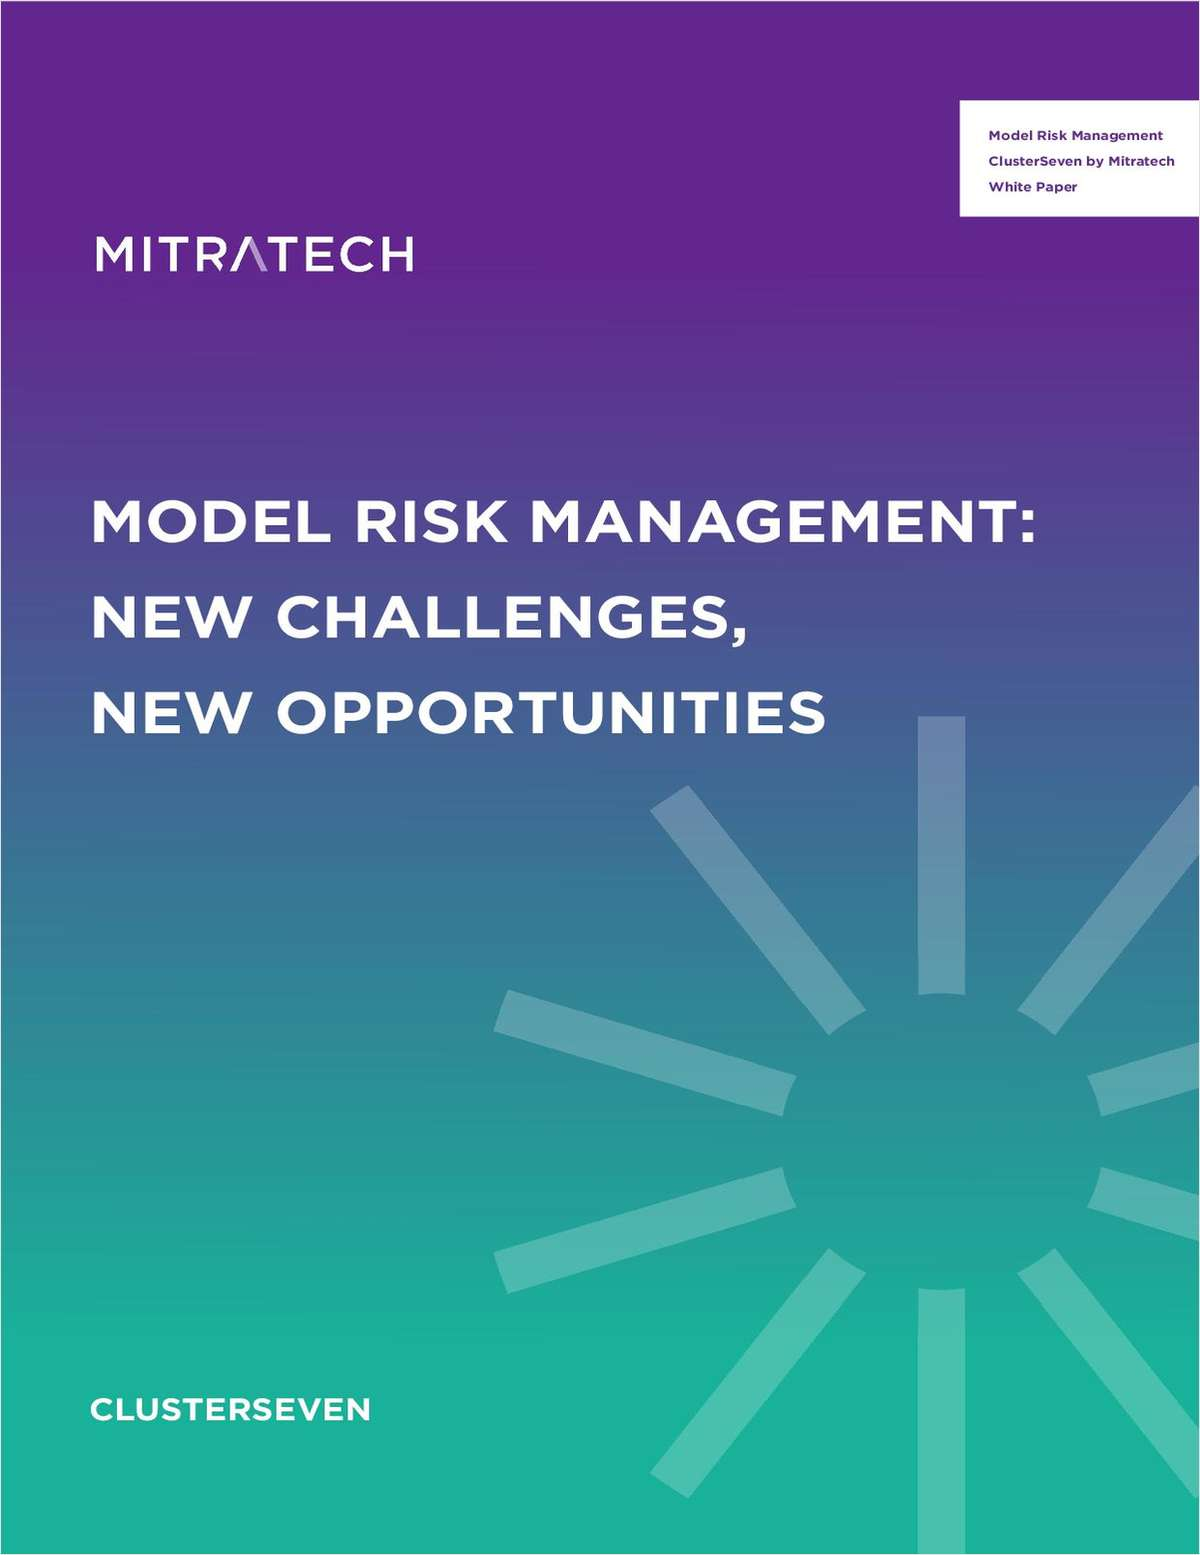 White Paper on Model Risk Management: New Challenges, New Opportunities